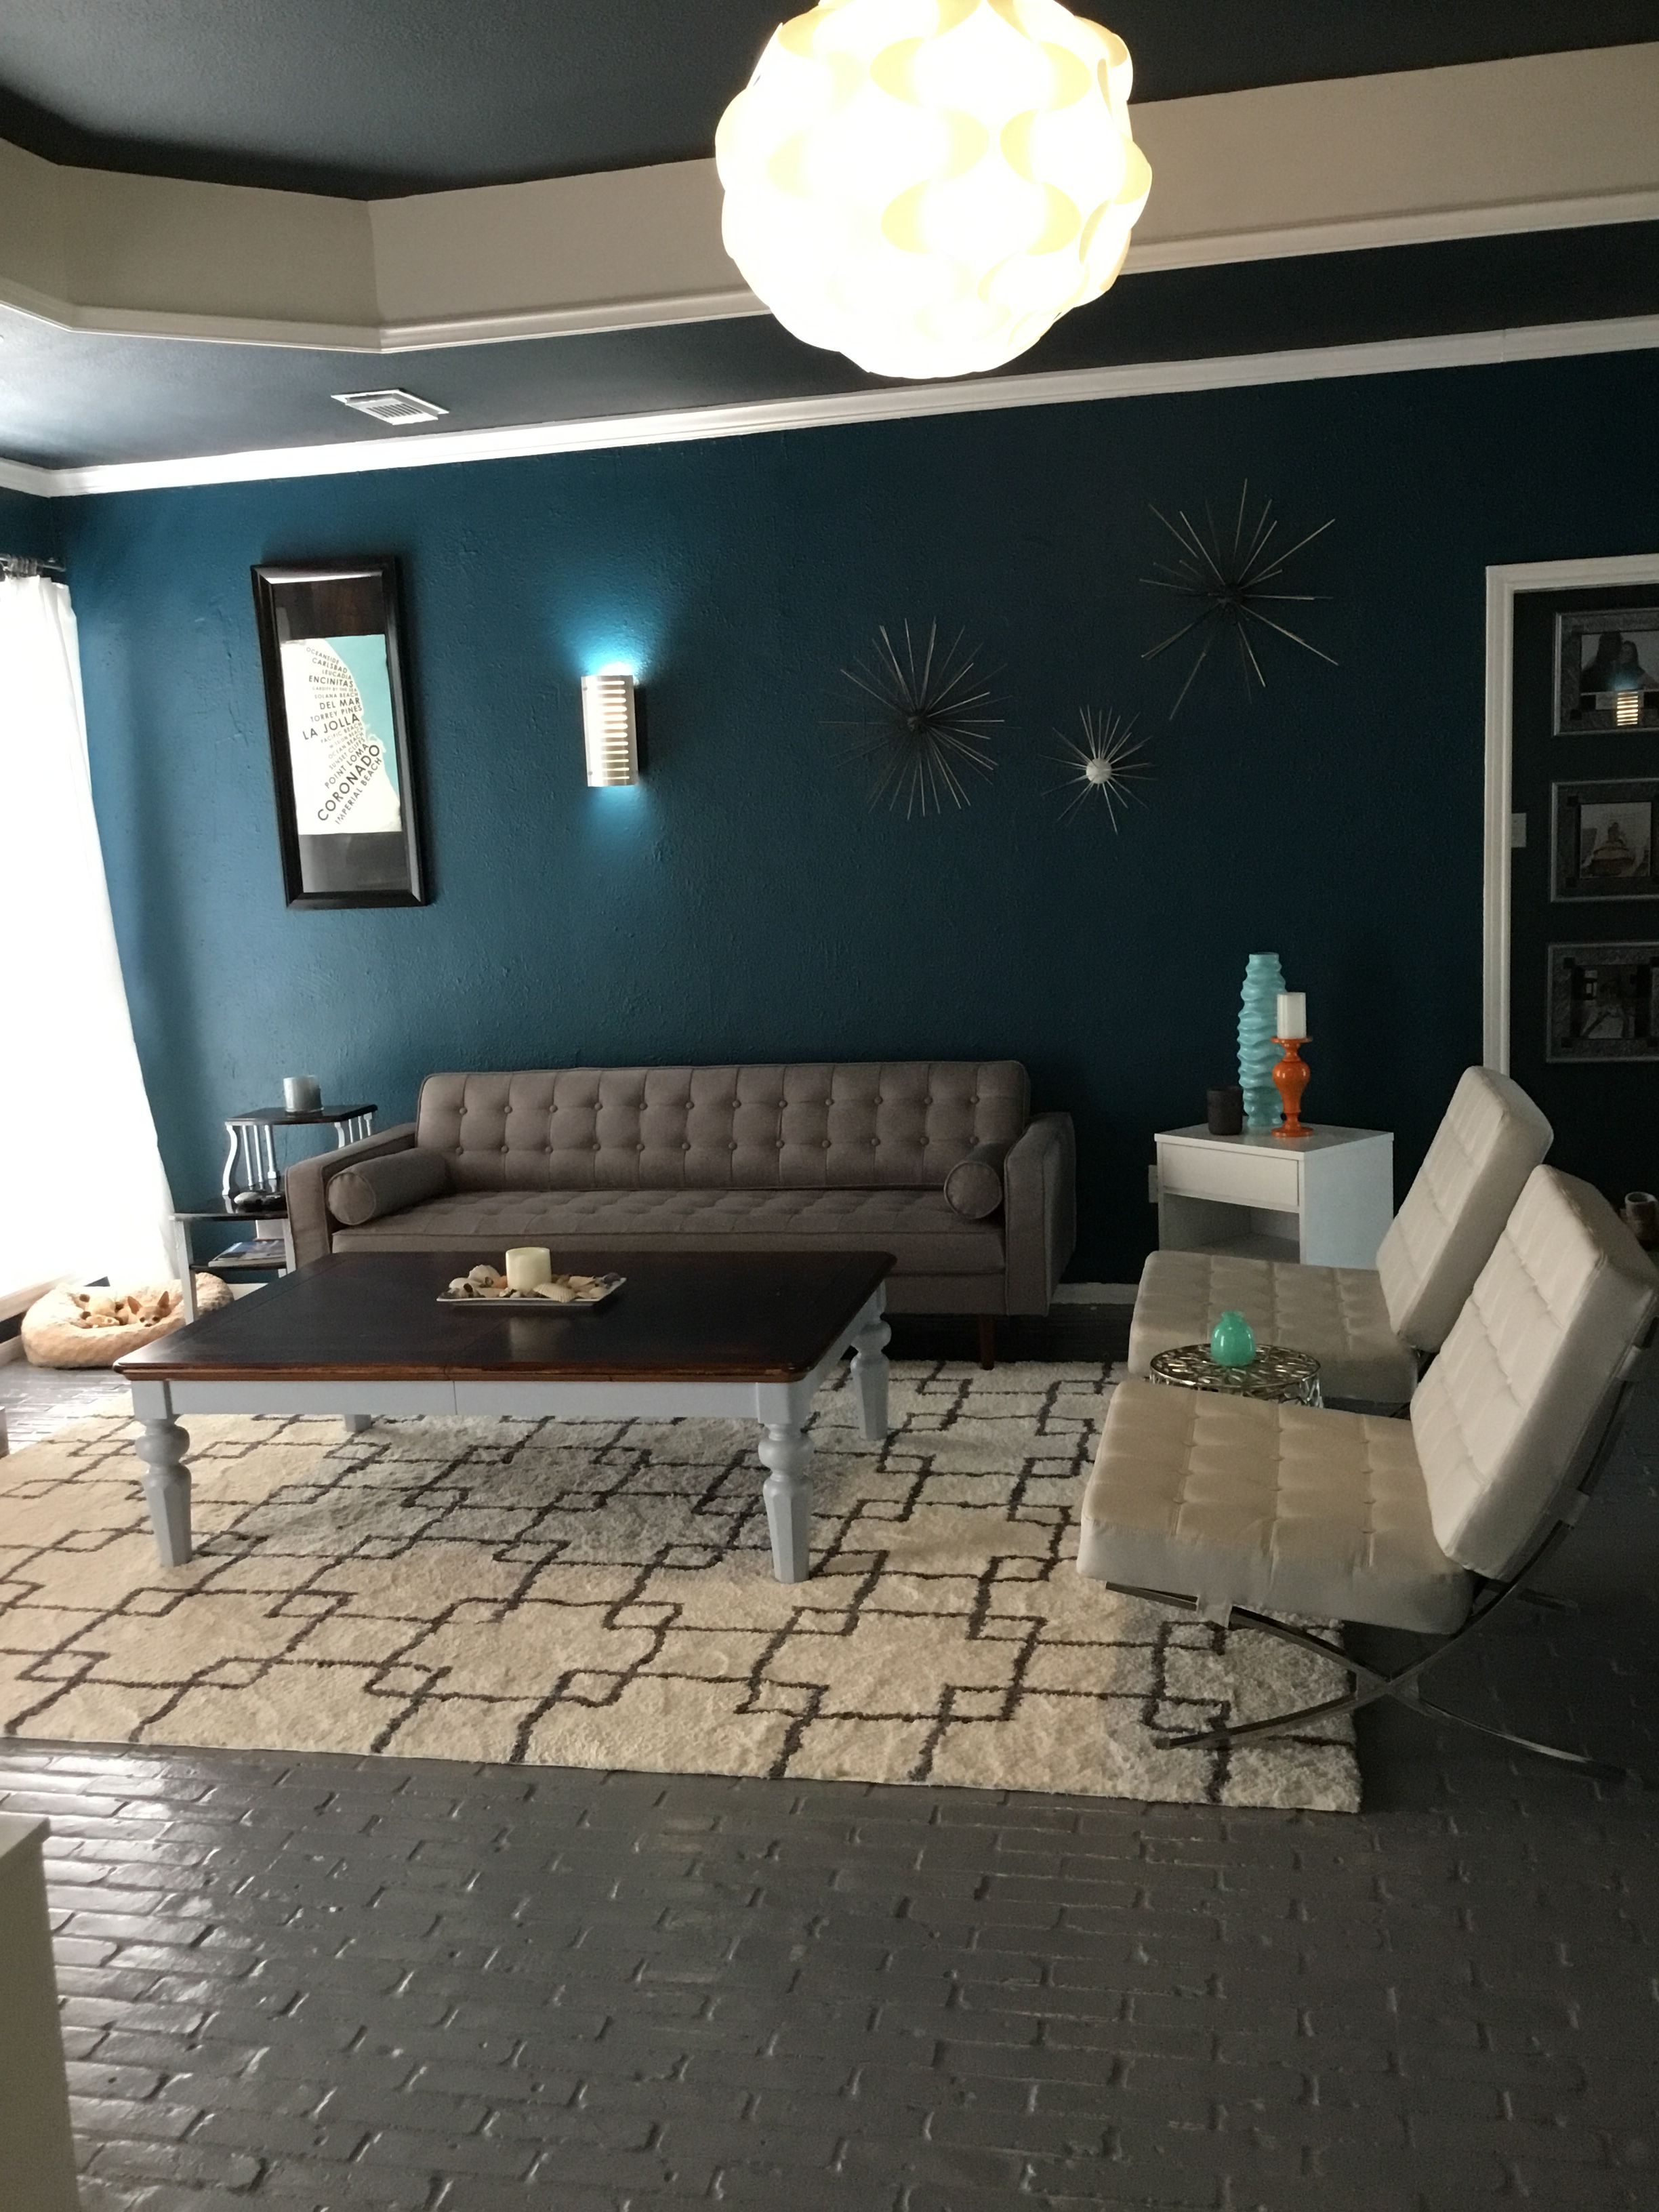 Benjamin Moore Galapagos Turquoise Turquoise Accent Walls Living Room Remodel Basement Colors #turquoise #living #room #walls